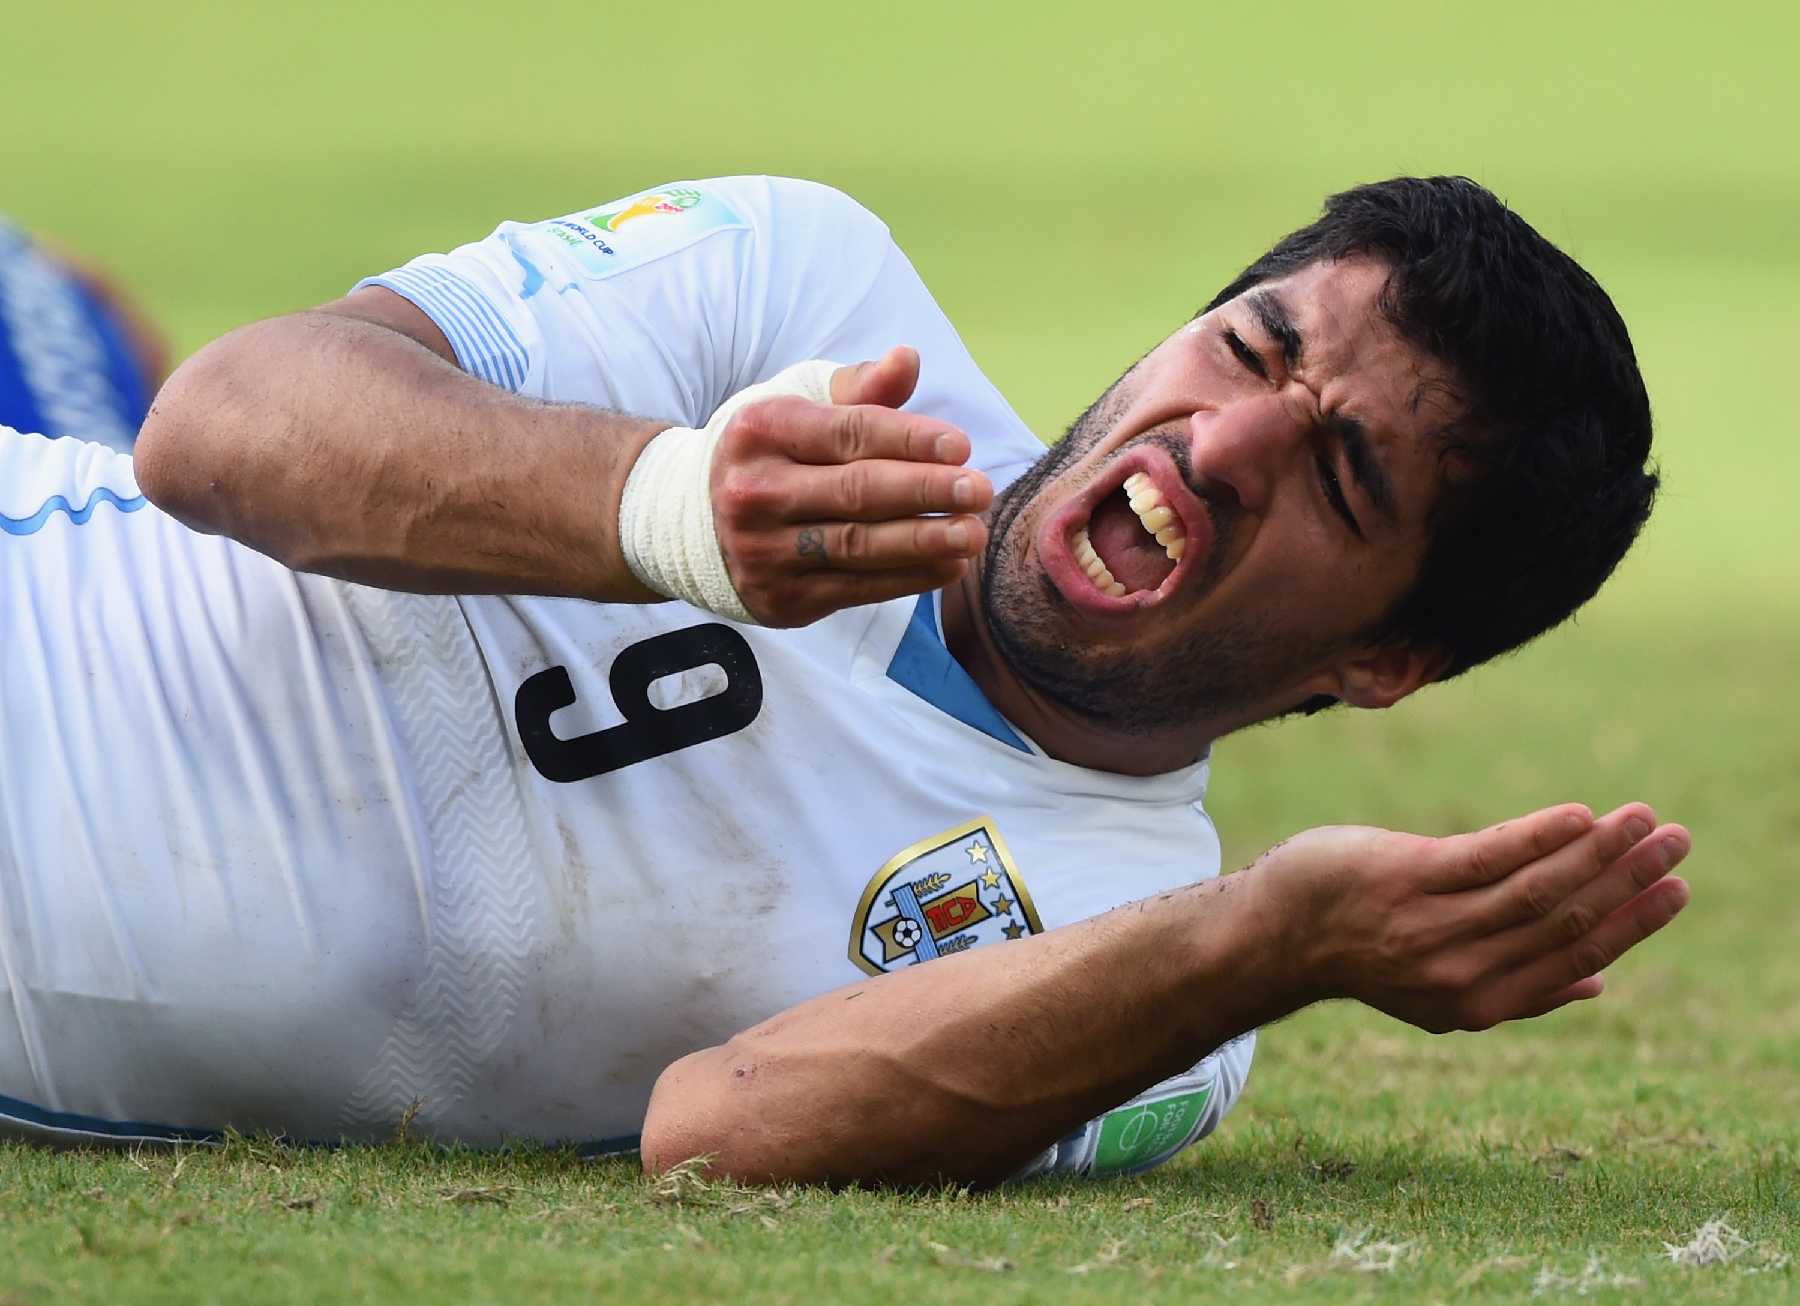 Flagrant 2: Luis Suarez Charged…With Ruining the World Cup